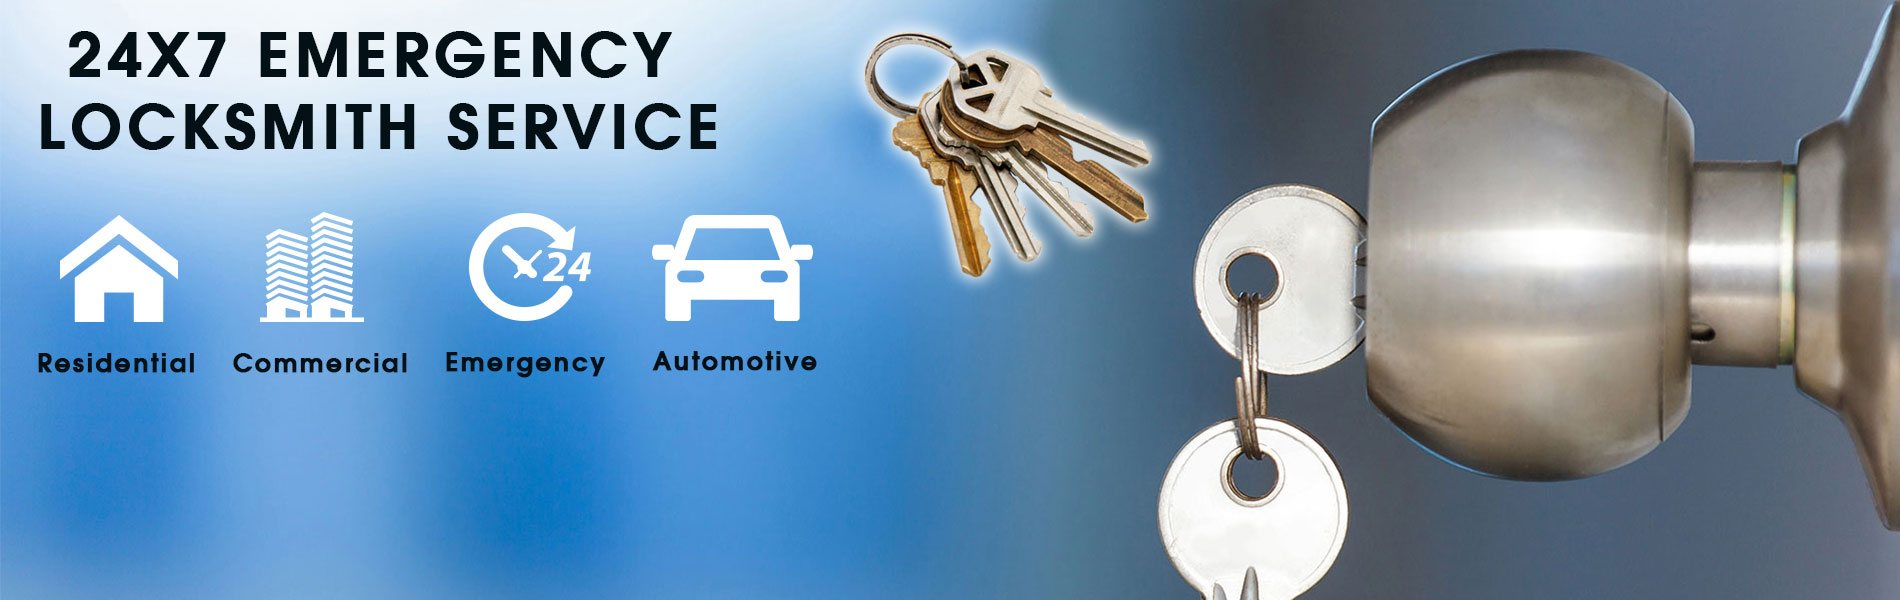 Golden Locksmith Services St Louis, MO 314-513-0039